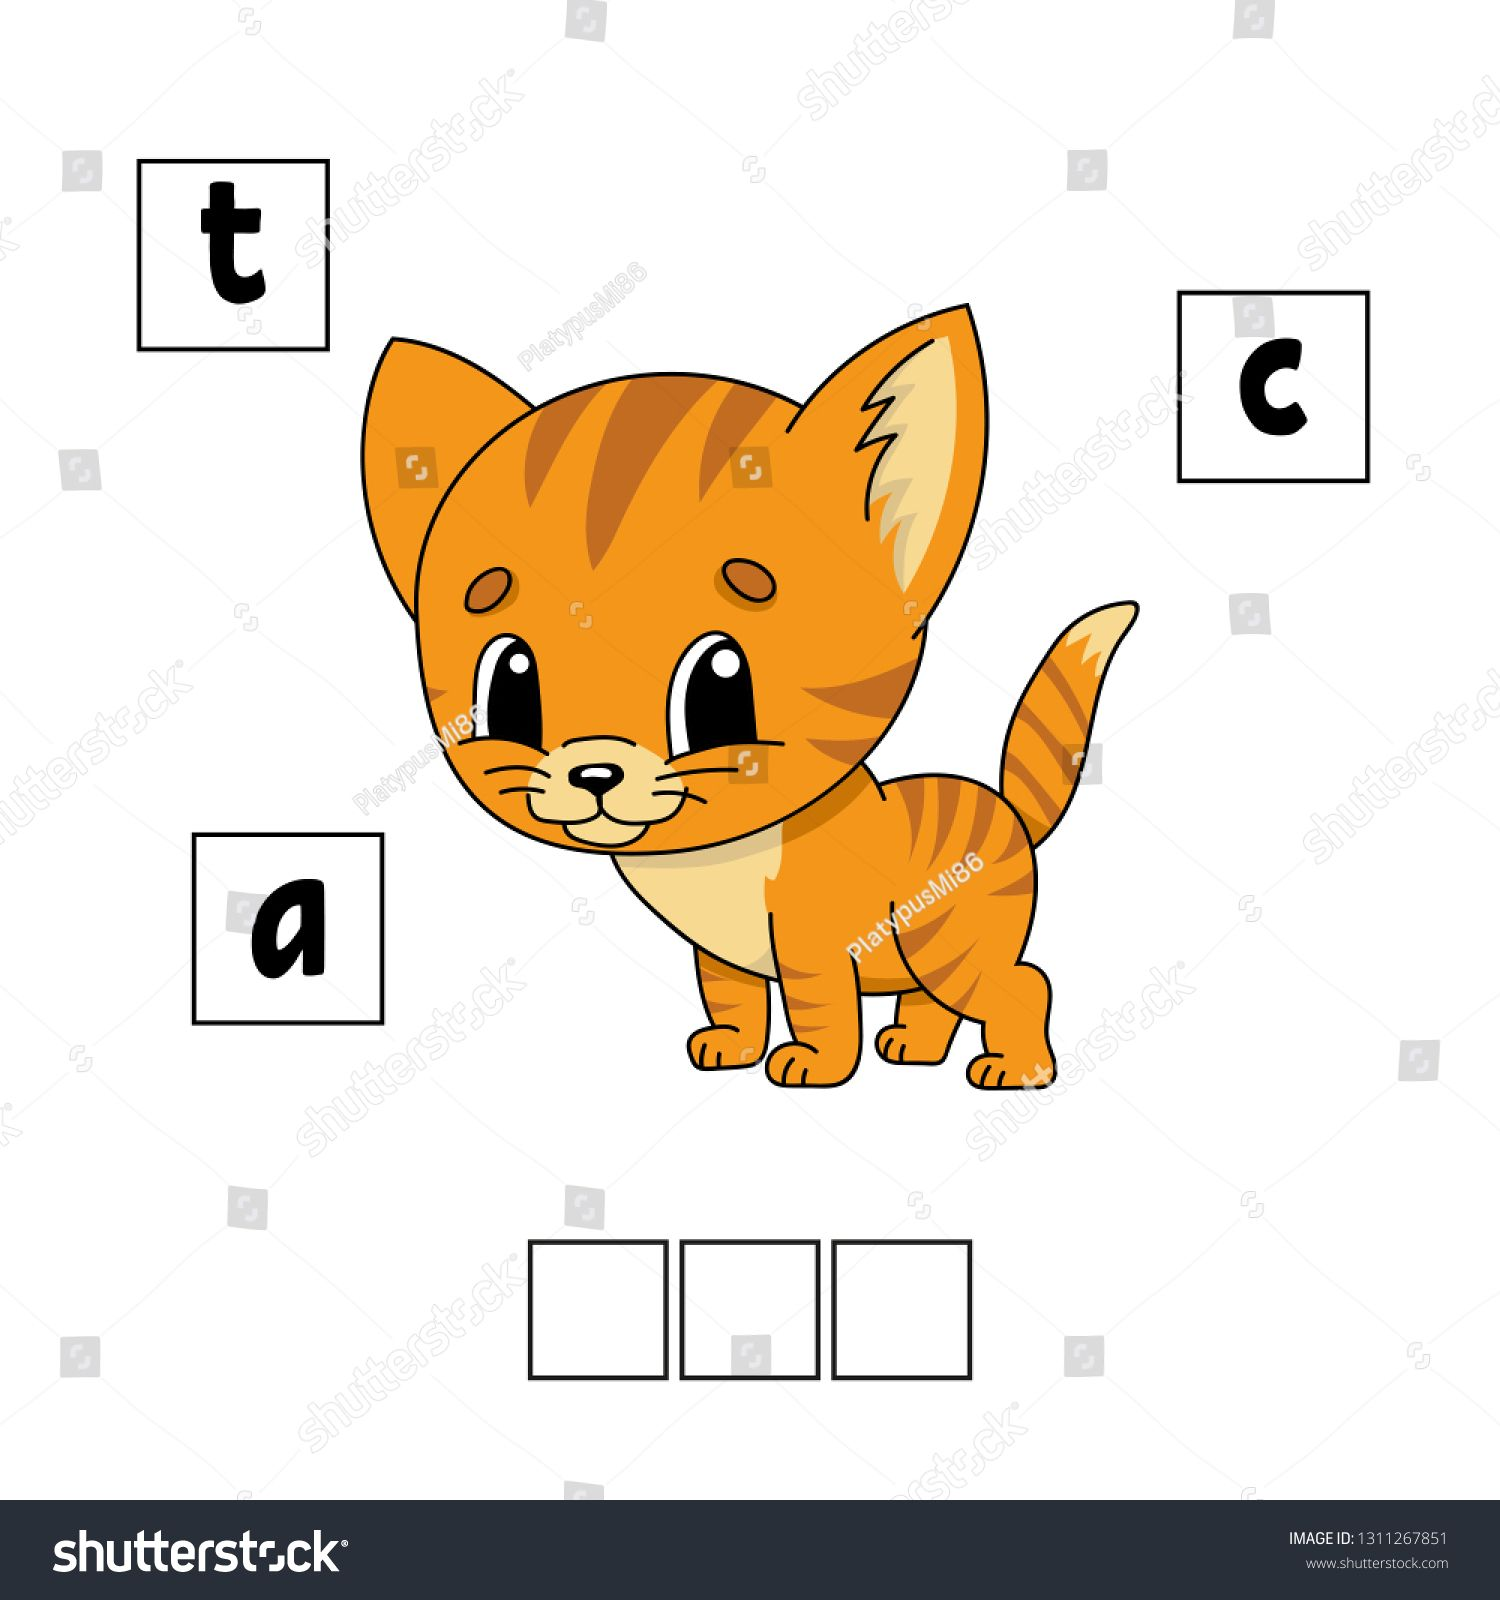 Words Puzzle Education Developing Worksheet Game For